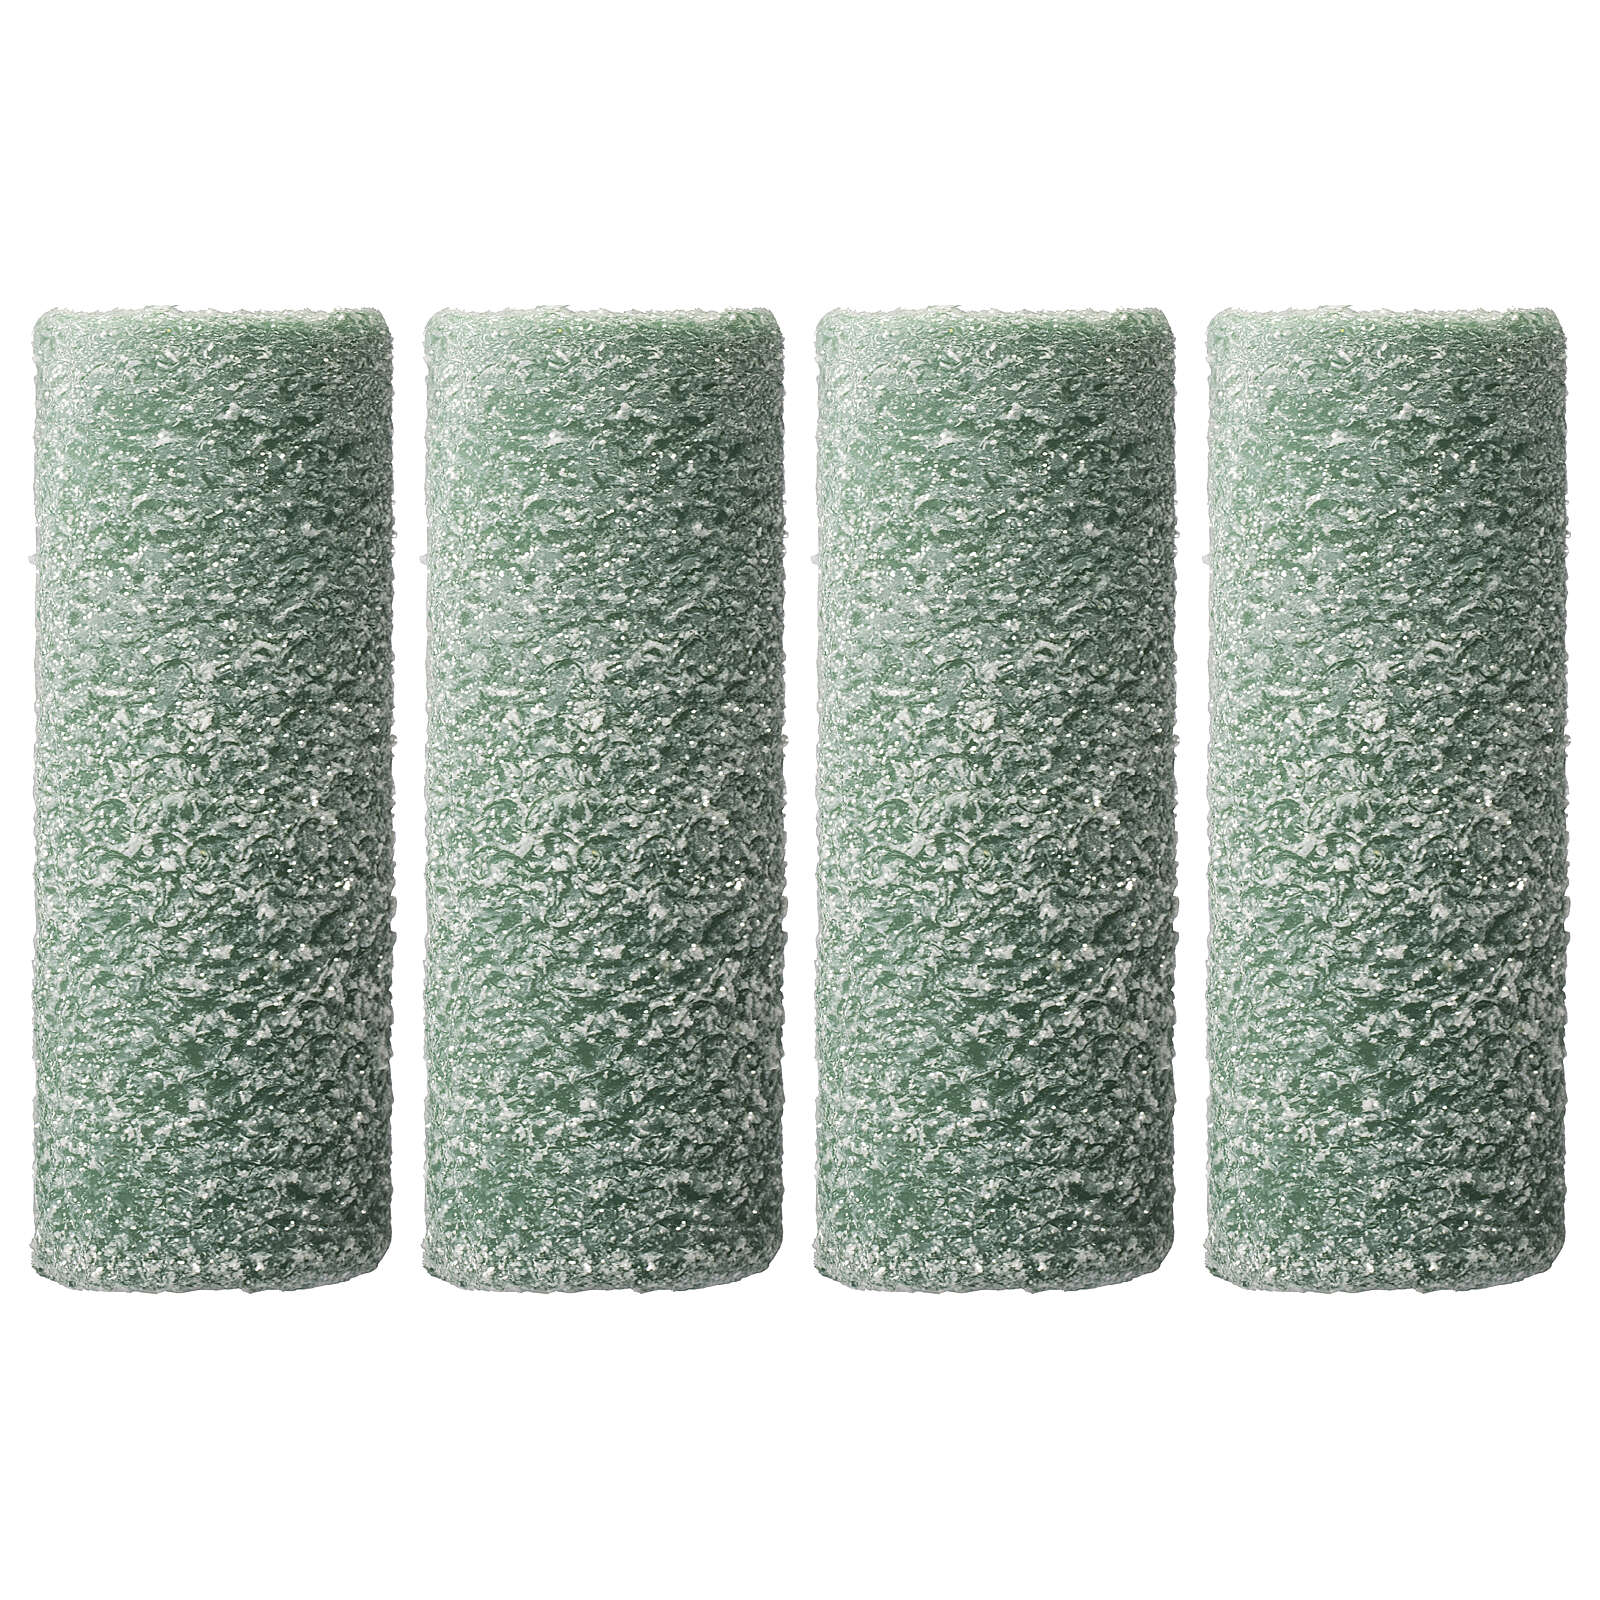 Green candles, snow flakes, Christmas set of 4, 150x60 mm 3